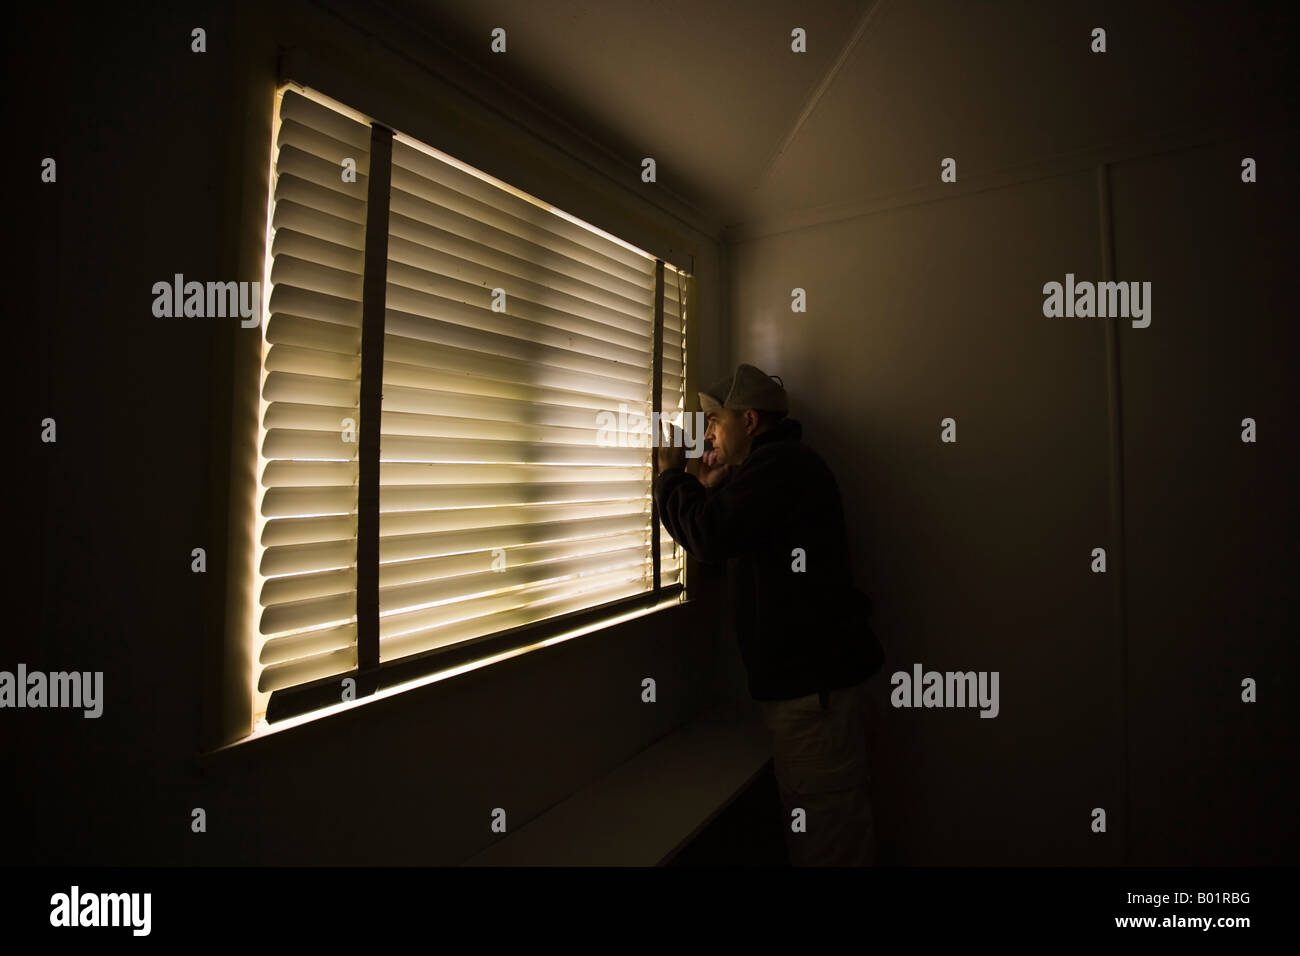 Man forties looks out window through slats of venetian blind - Stock Image